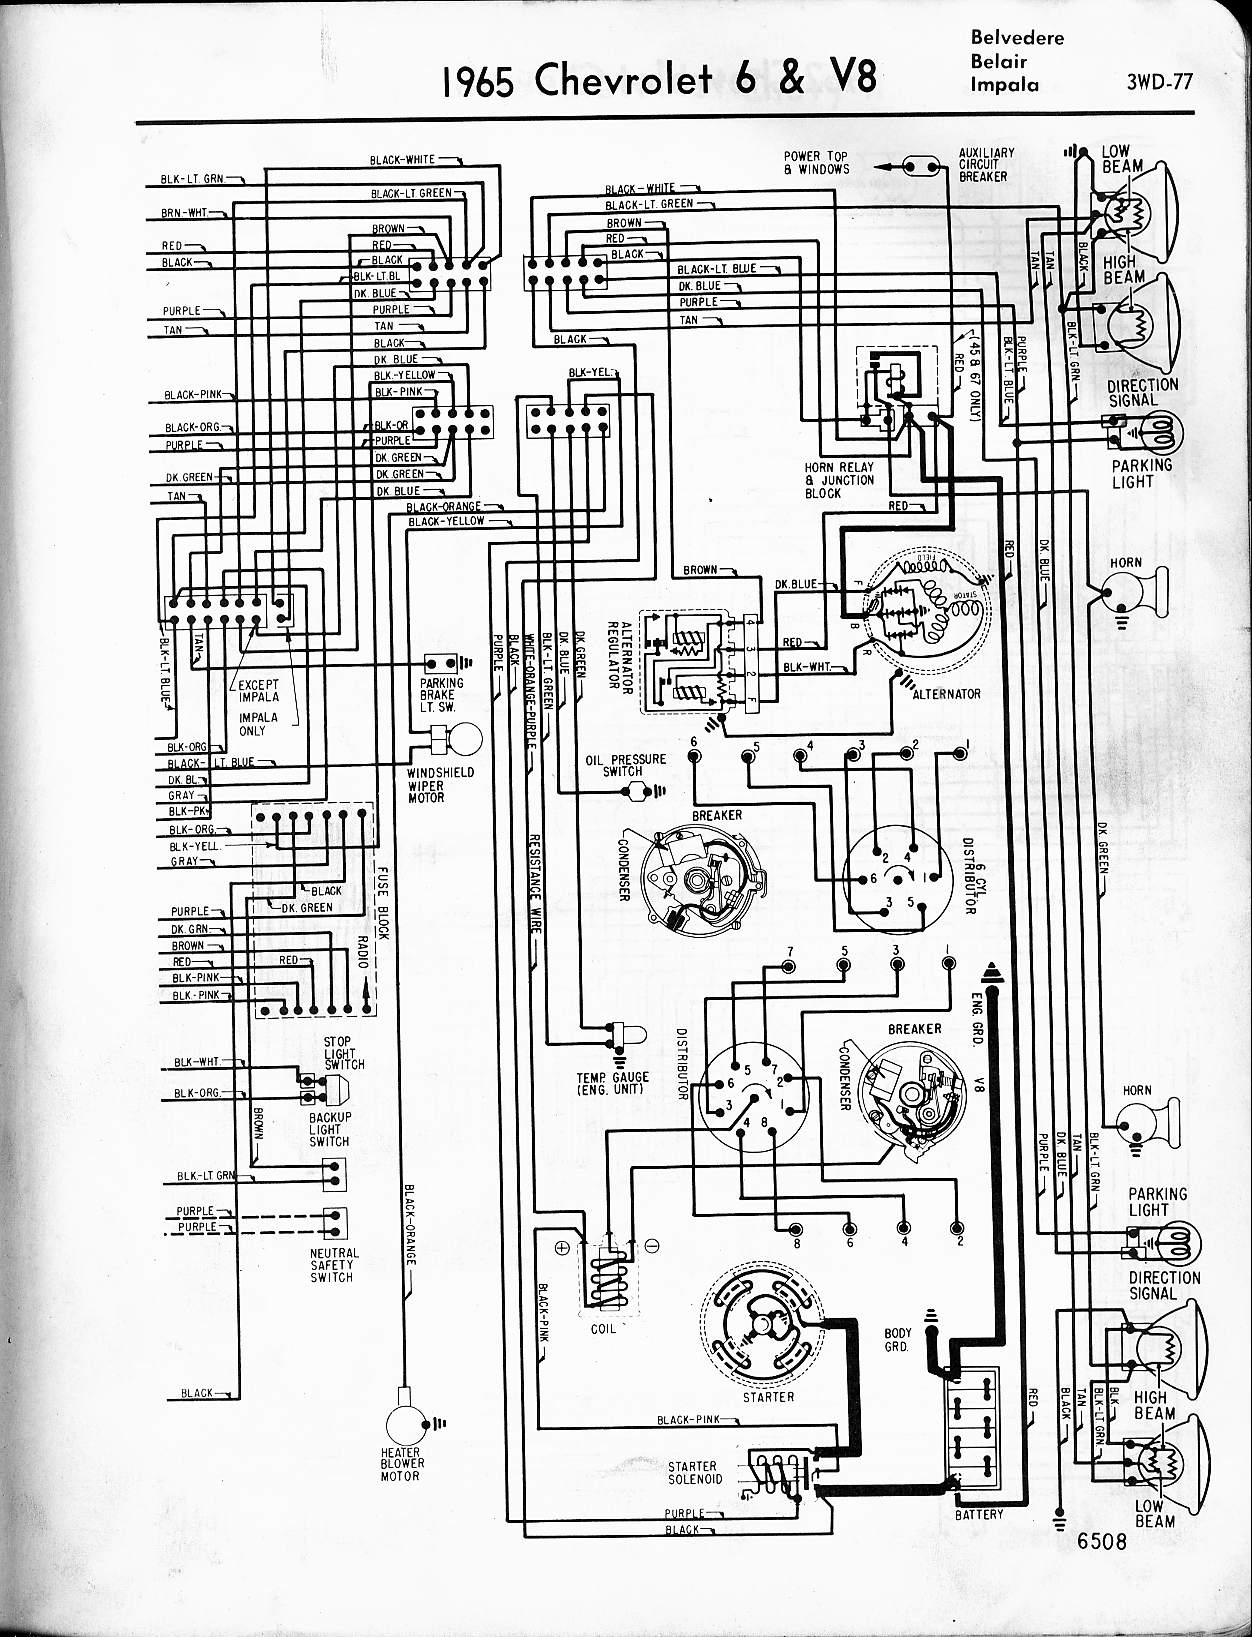 72 chevelle wiring diagram pdf wiring library Wiring Kit chevy diagrams rh wiring wizard 1972 chevelle wiring harness diagram 1970 chevelle wiring harness diagram